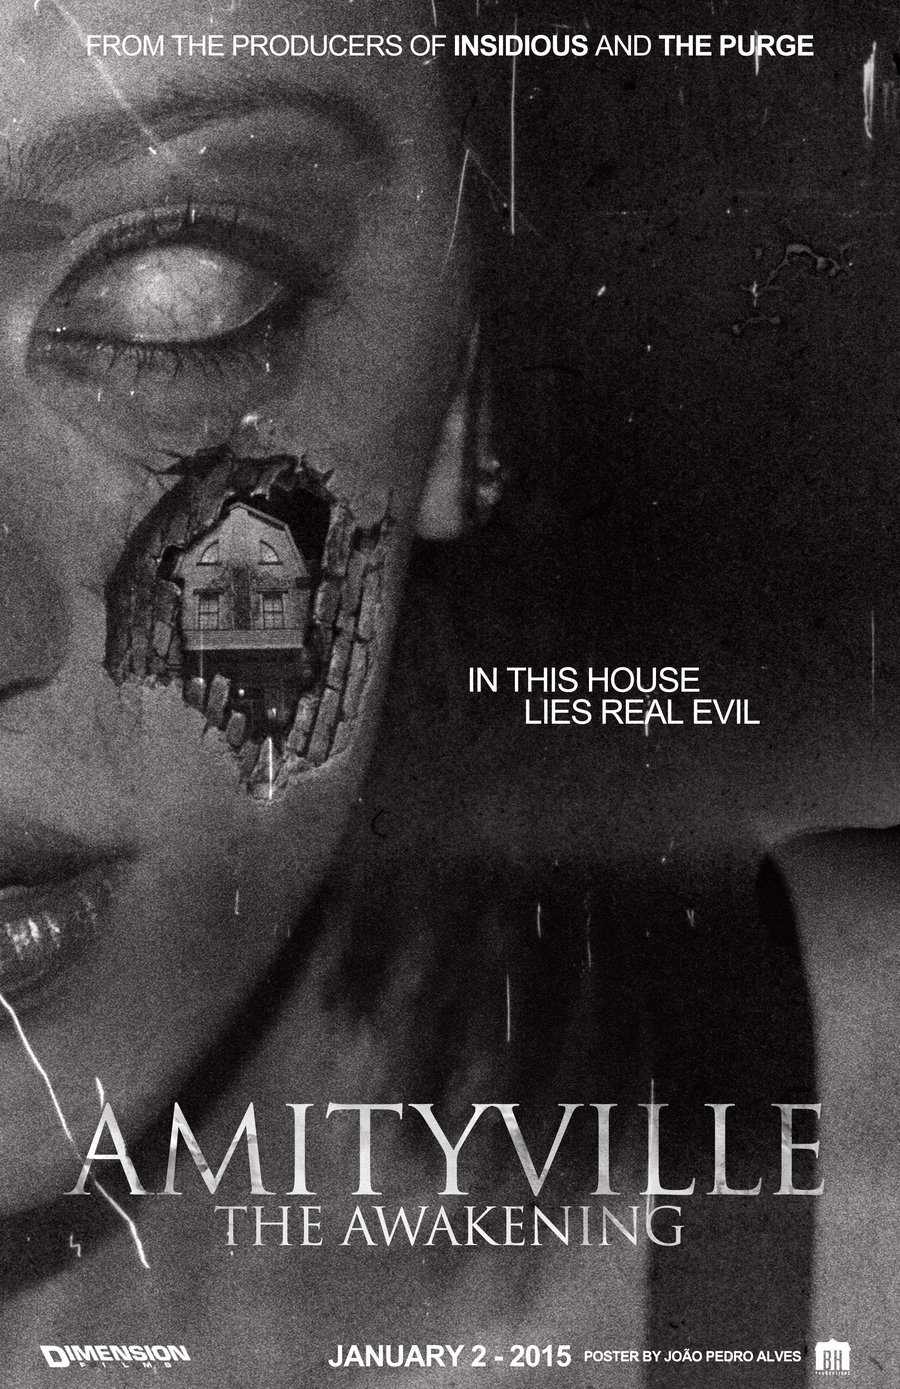 _amytiville__the_awakening__movie_poster_by_johnyisthedevil-d8ozx18